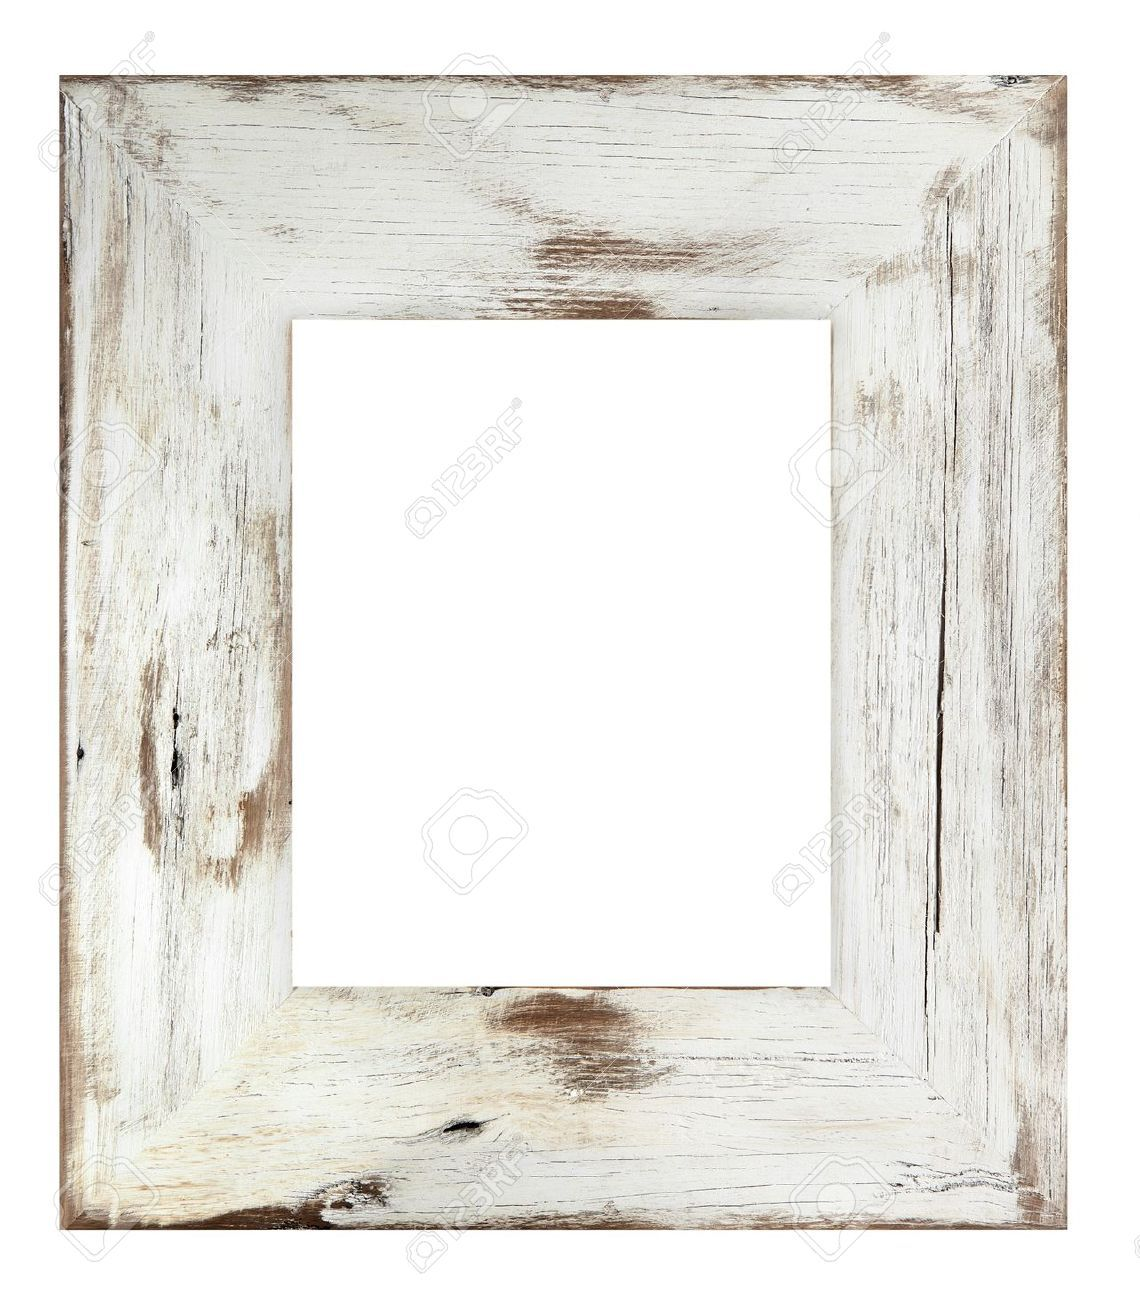 photo frame distressed google search - Distressed Wood Frames